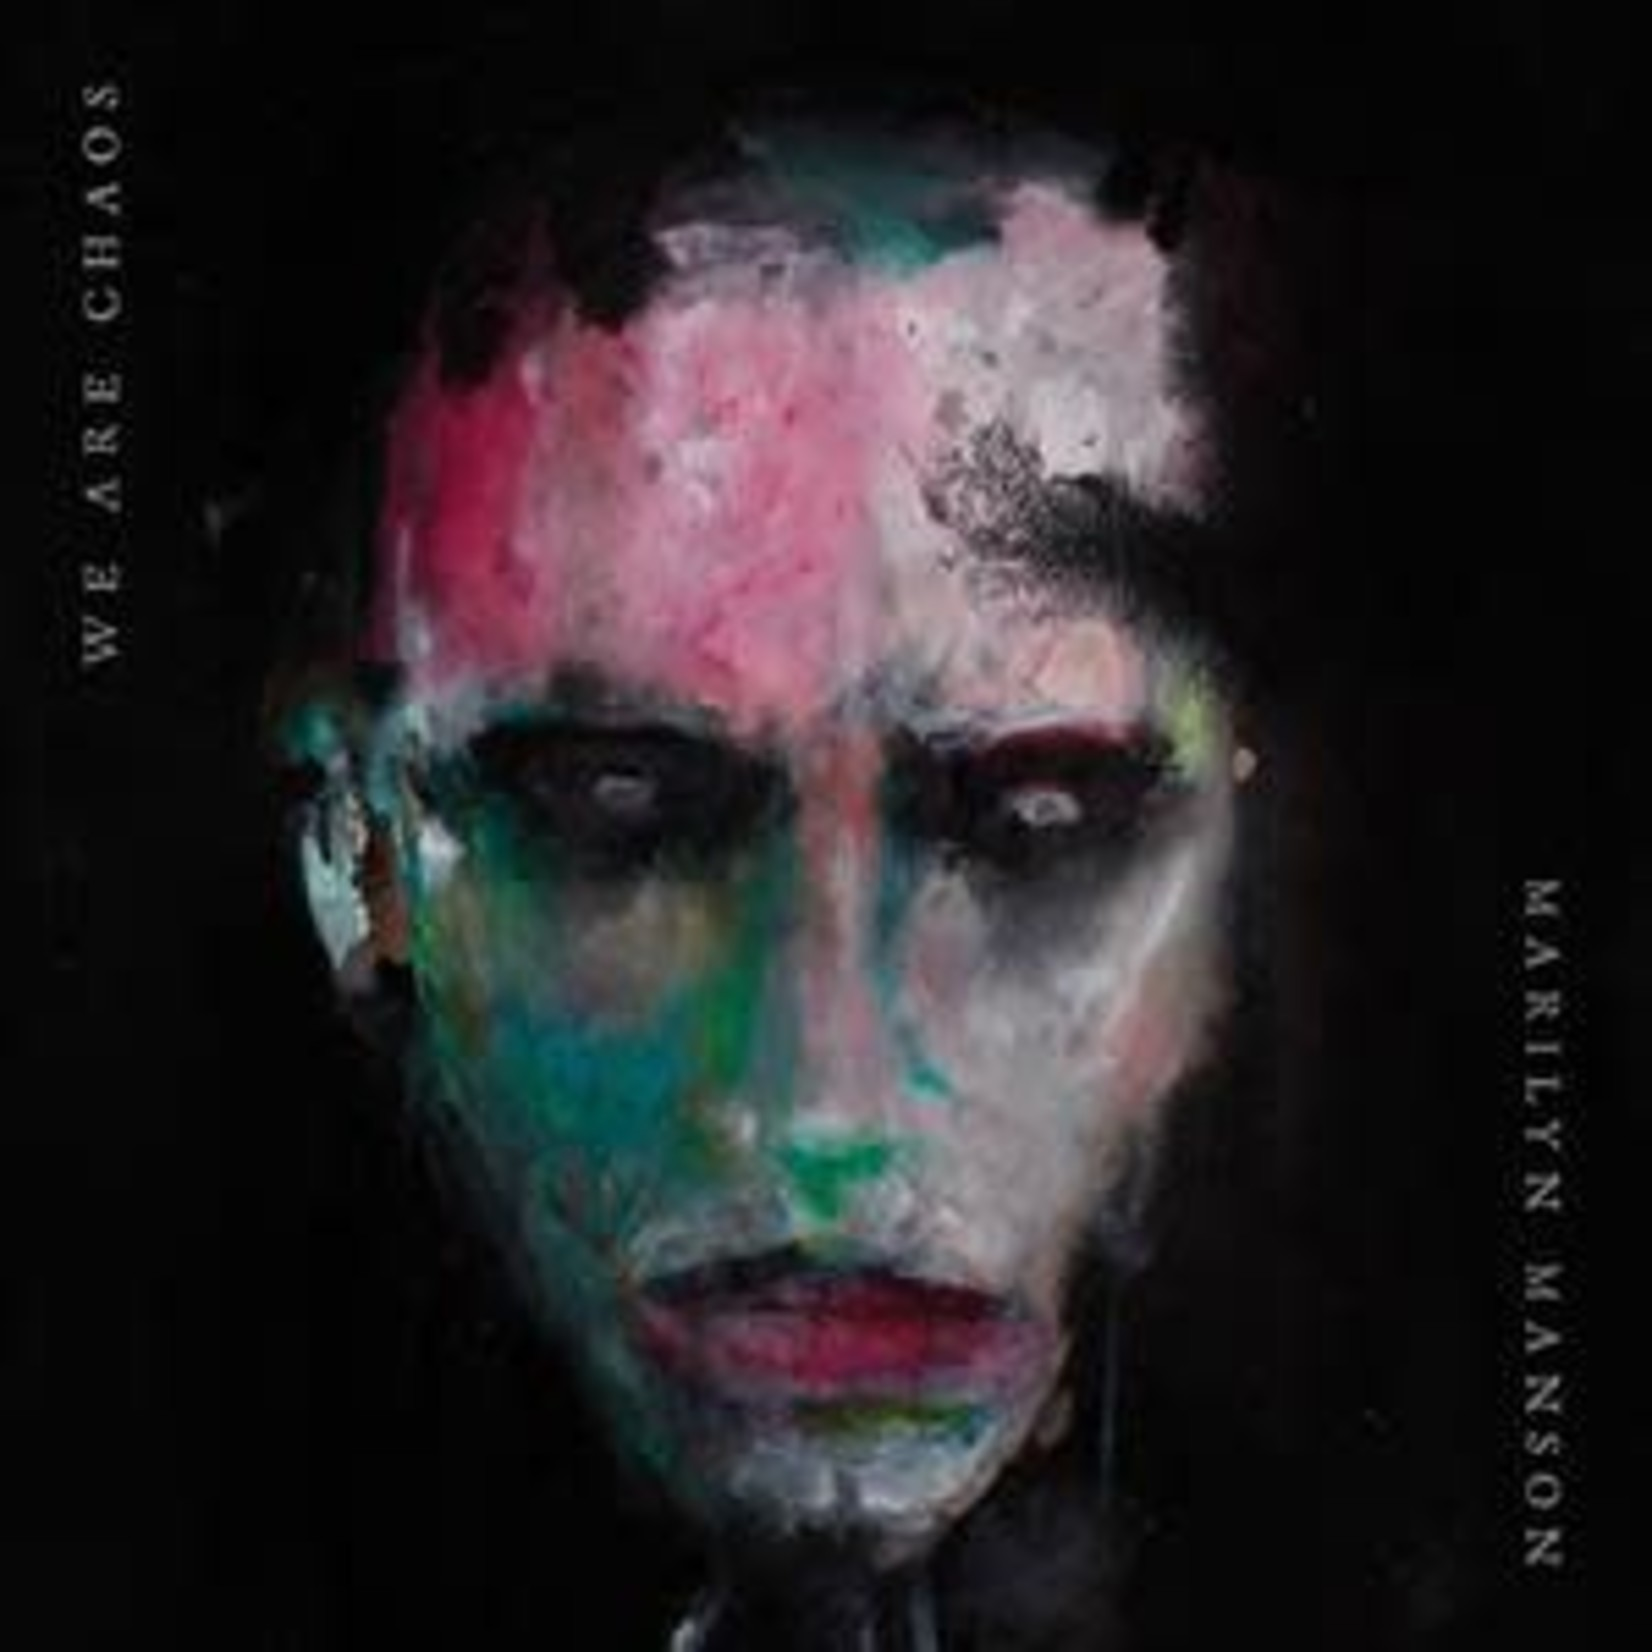 MARILYN MANSON  - We Are Chaos  Indie only / White Vinyl / Incl. Poster (Painting By Manson)   (VINYL)